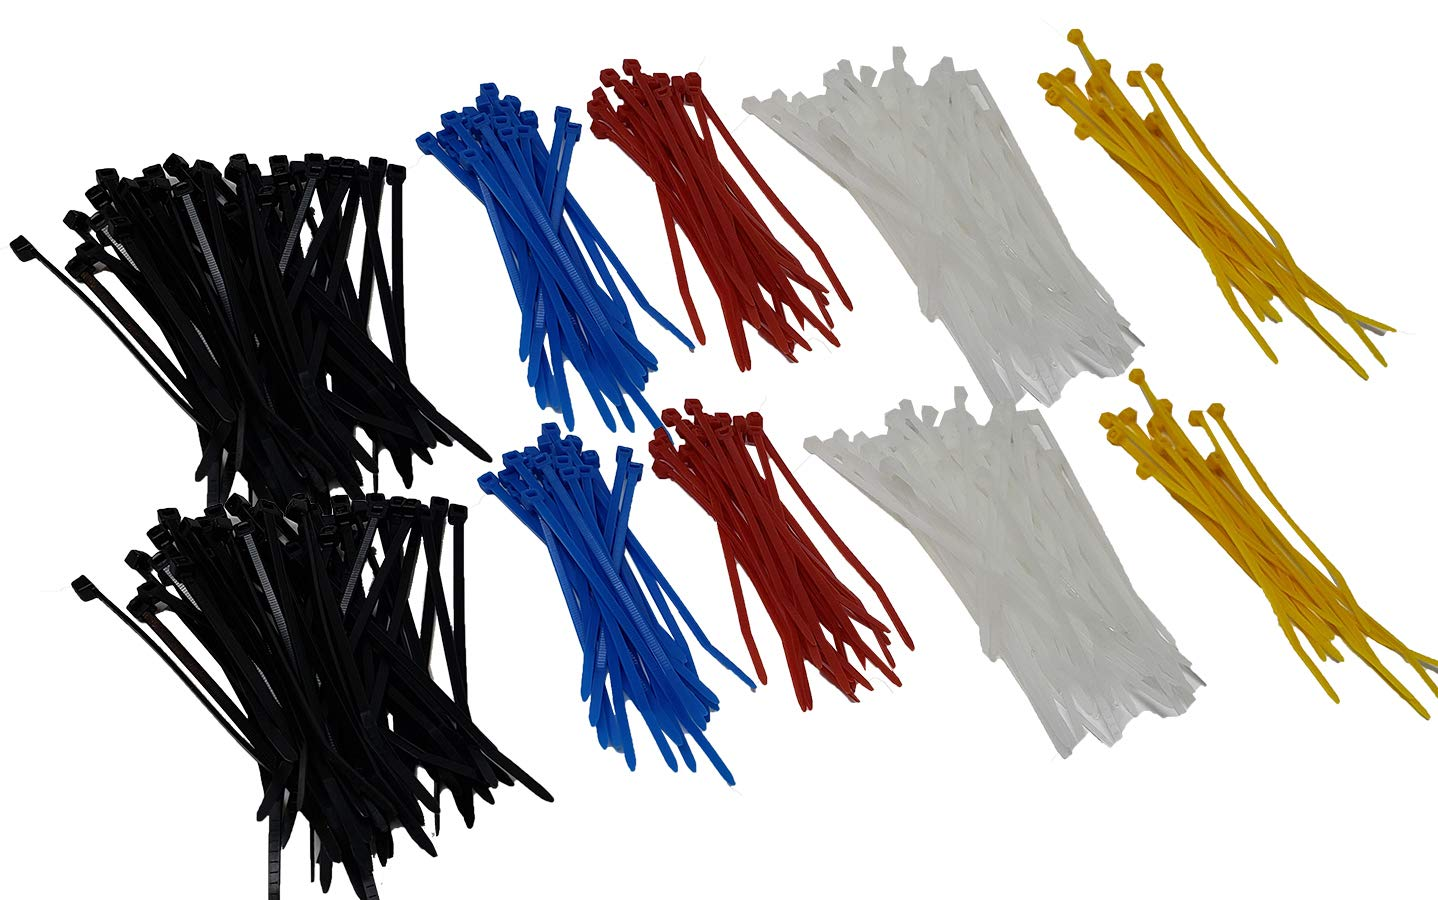 """Mini Zip Ties Colored Cable Ties Strap 4/"""" Multi-colors 600 Count Self-Locking Plastic Wire"""